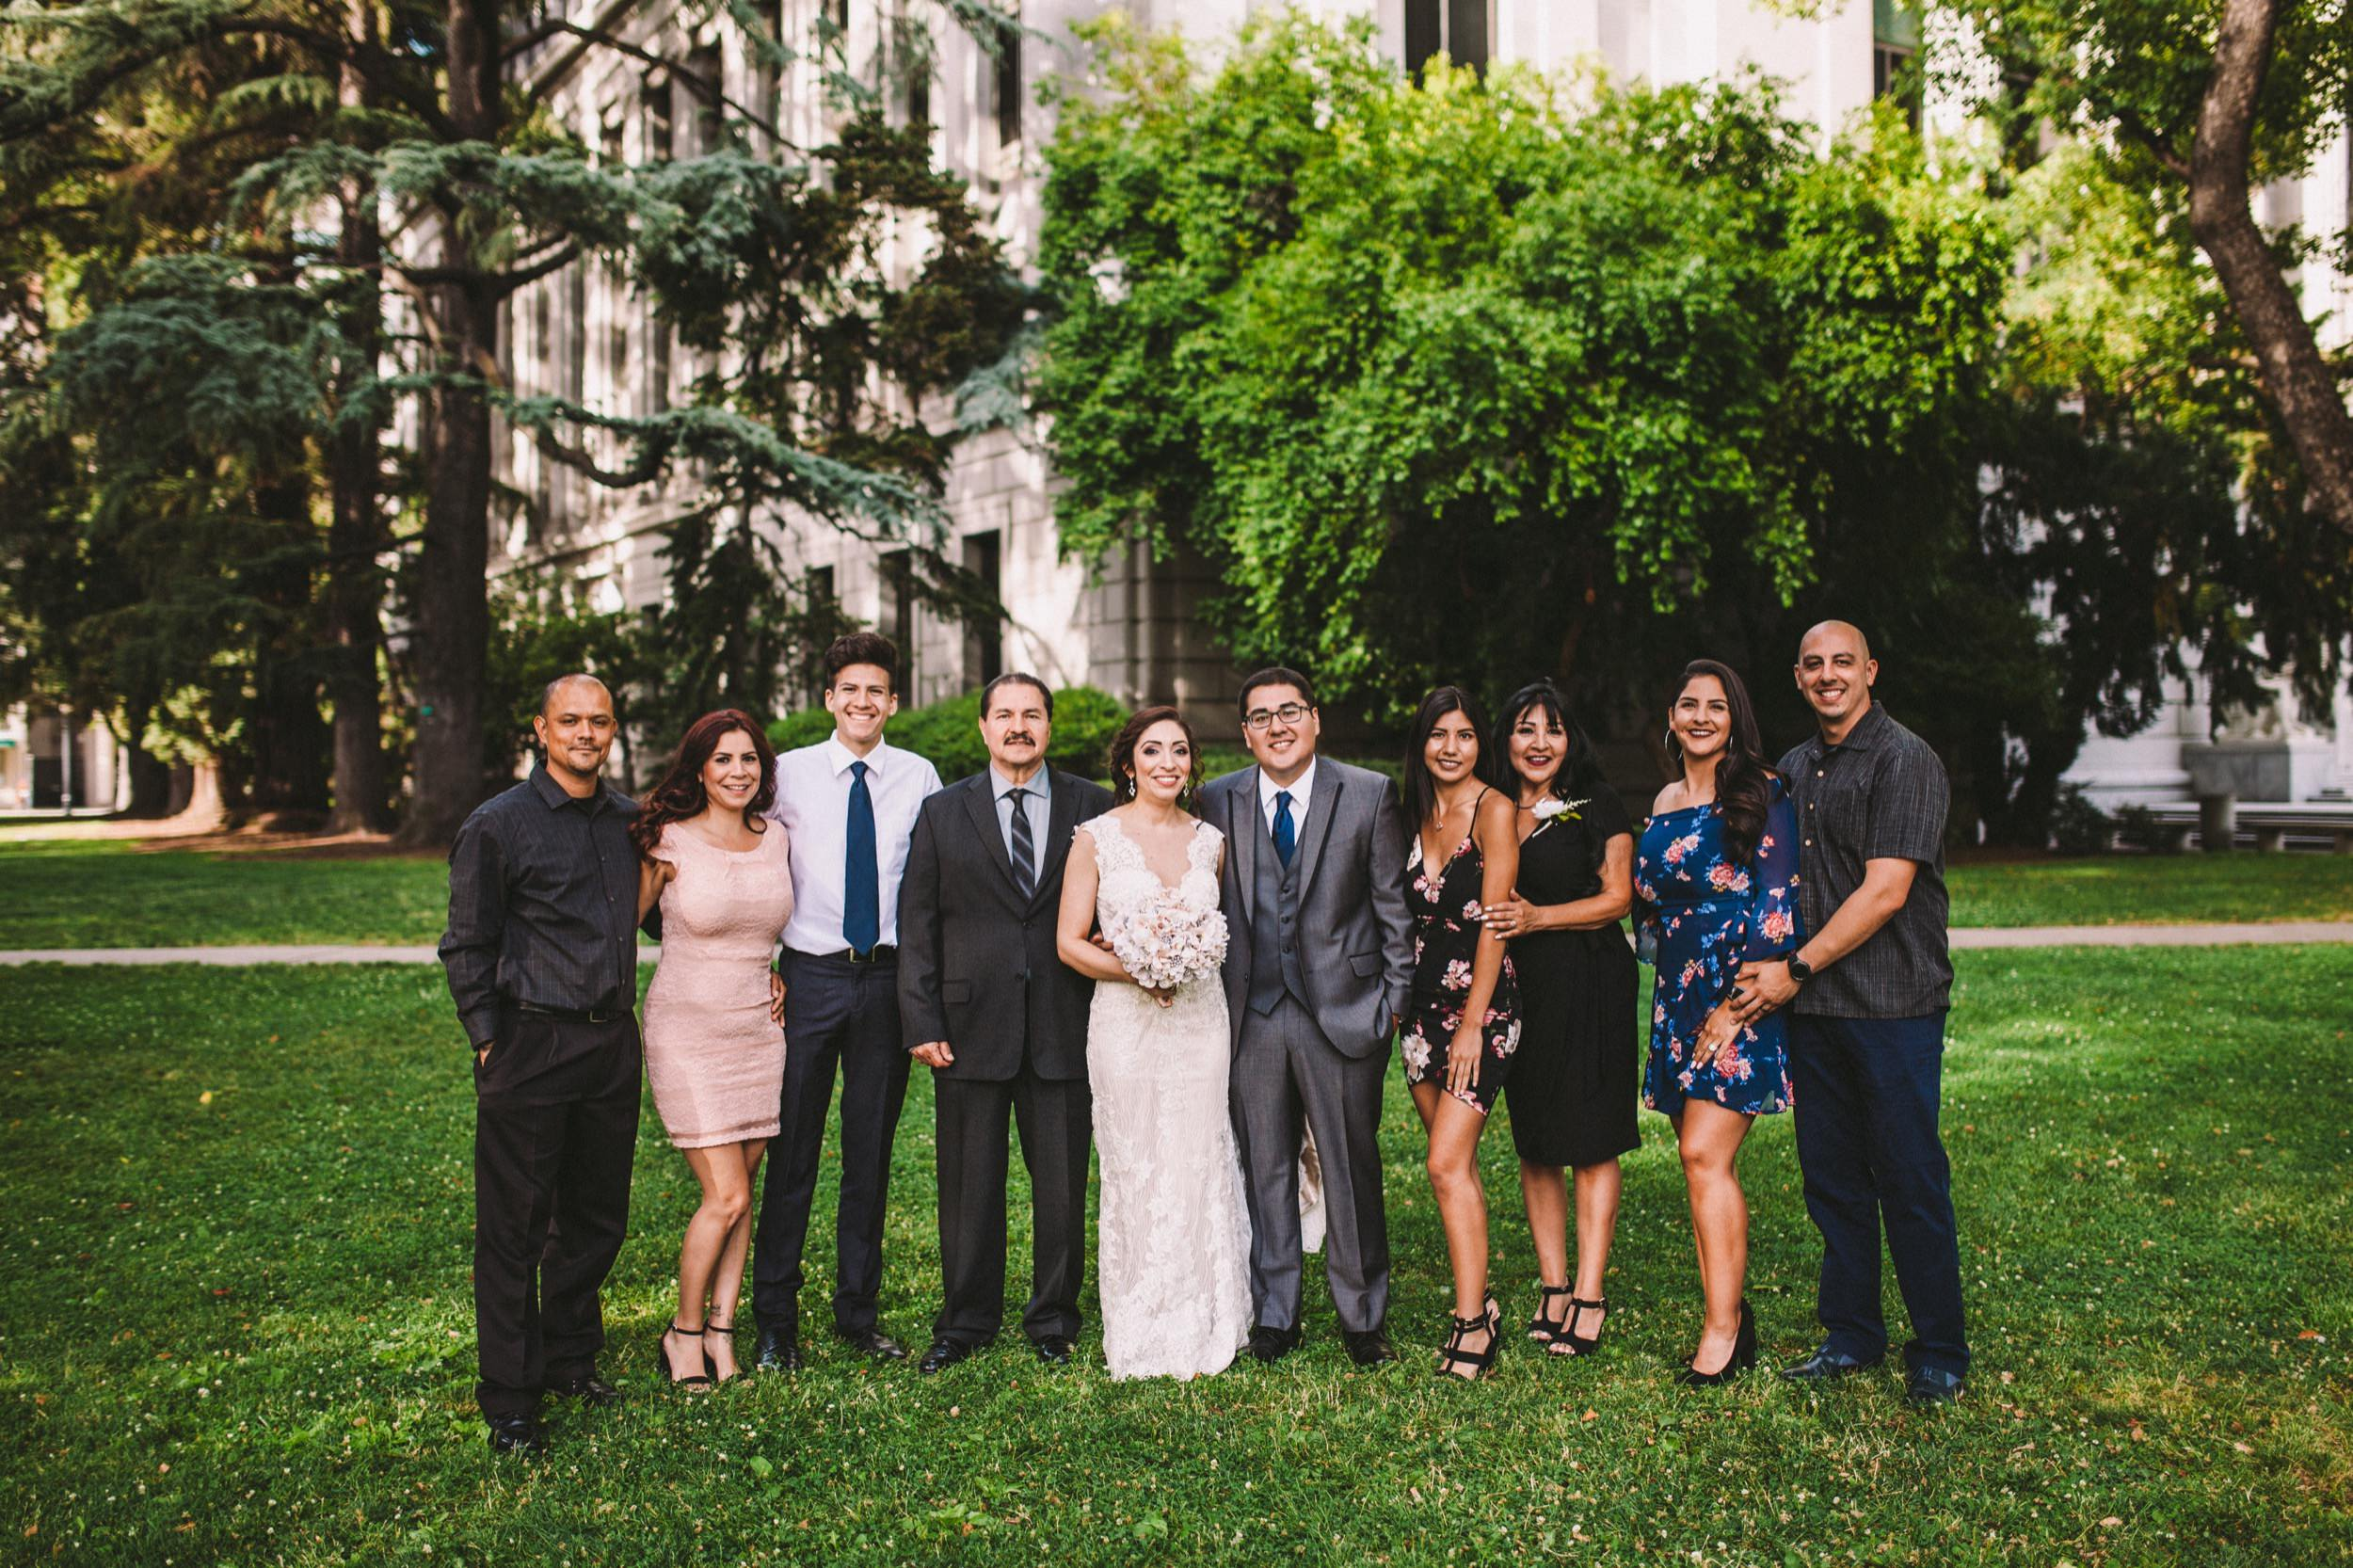 Sacramento Sutter Club & Capitol Building Wedding Photography-488.jpg